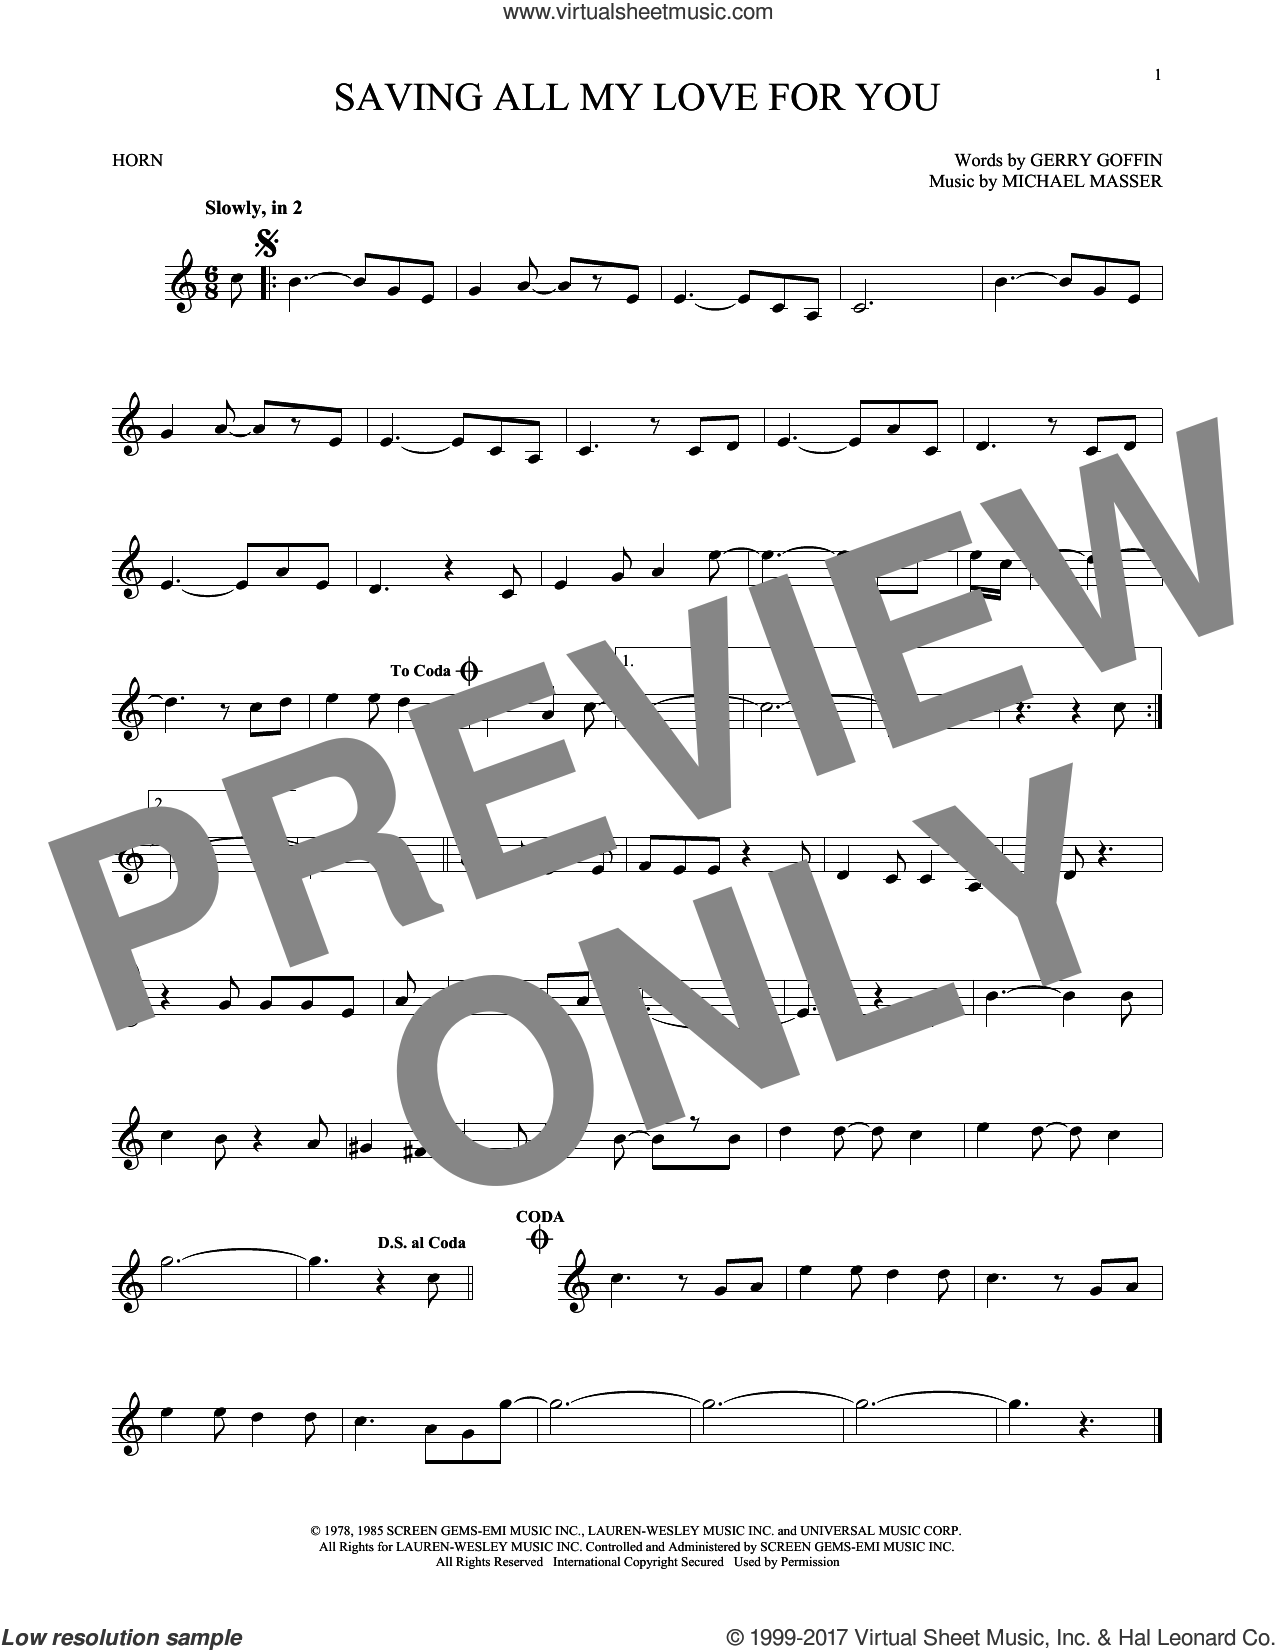 Saving All My Love For You sheet music for horn solo by Whitney Houston, Gerry Goffin and Michael Masser, intermediate skill level